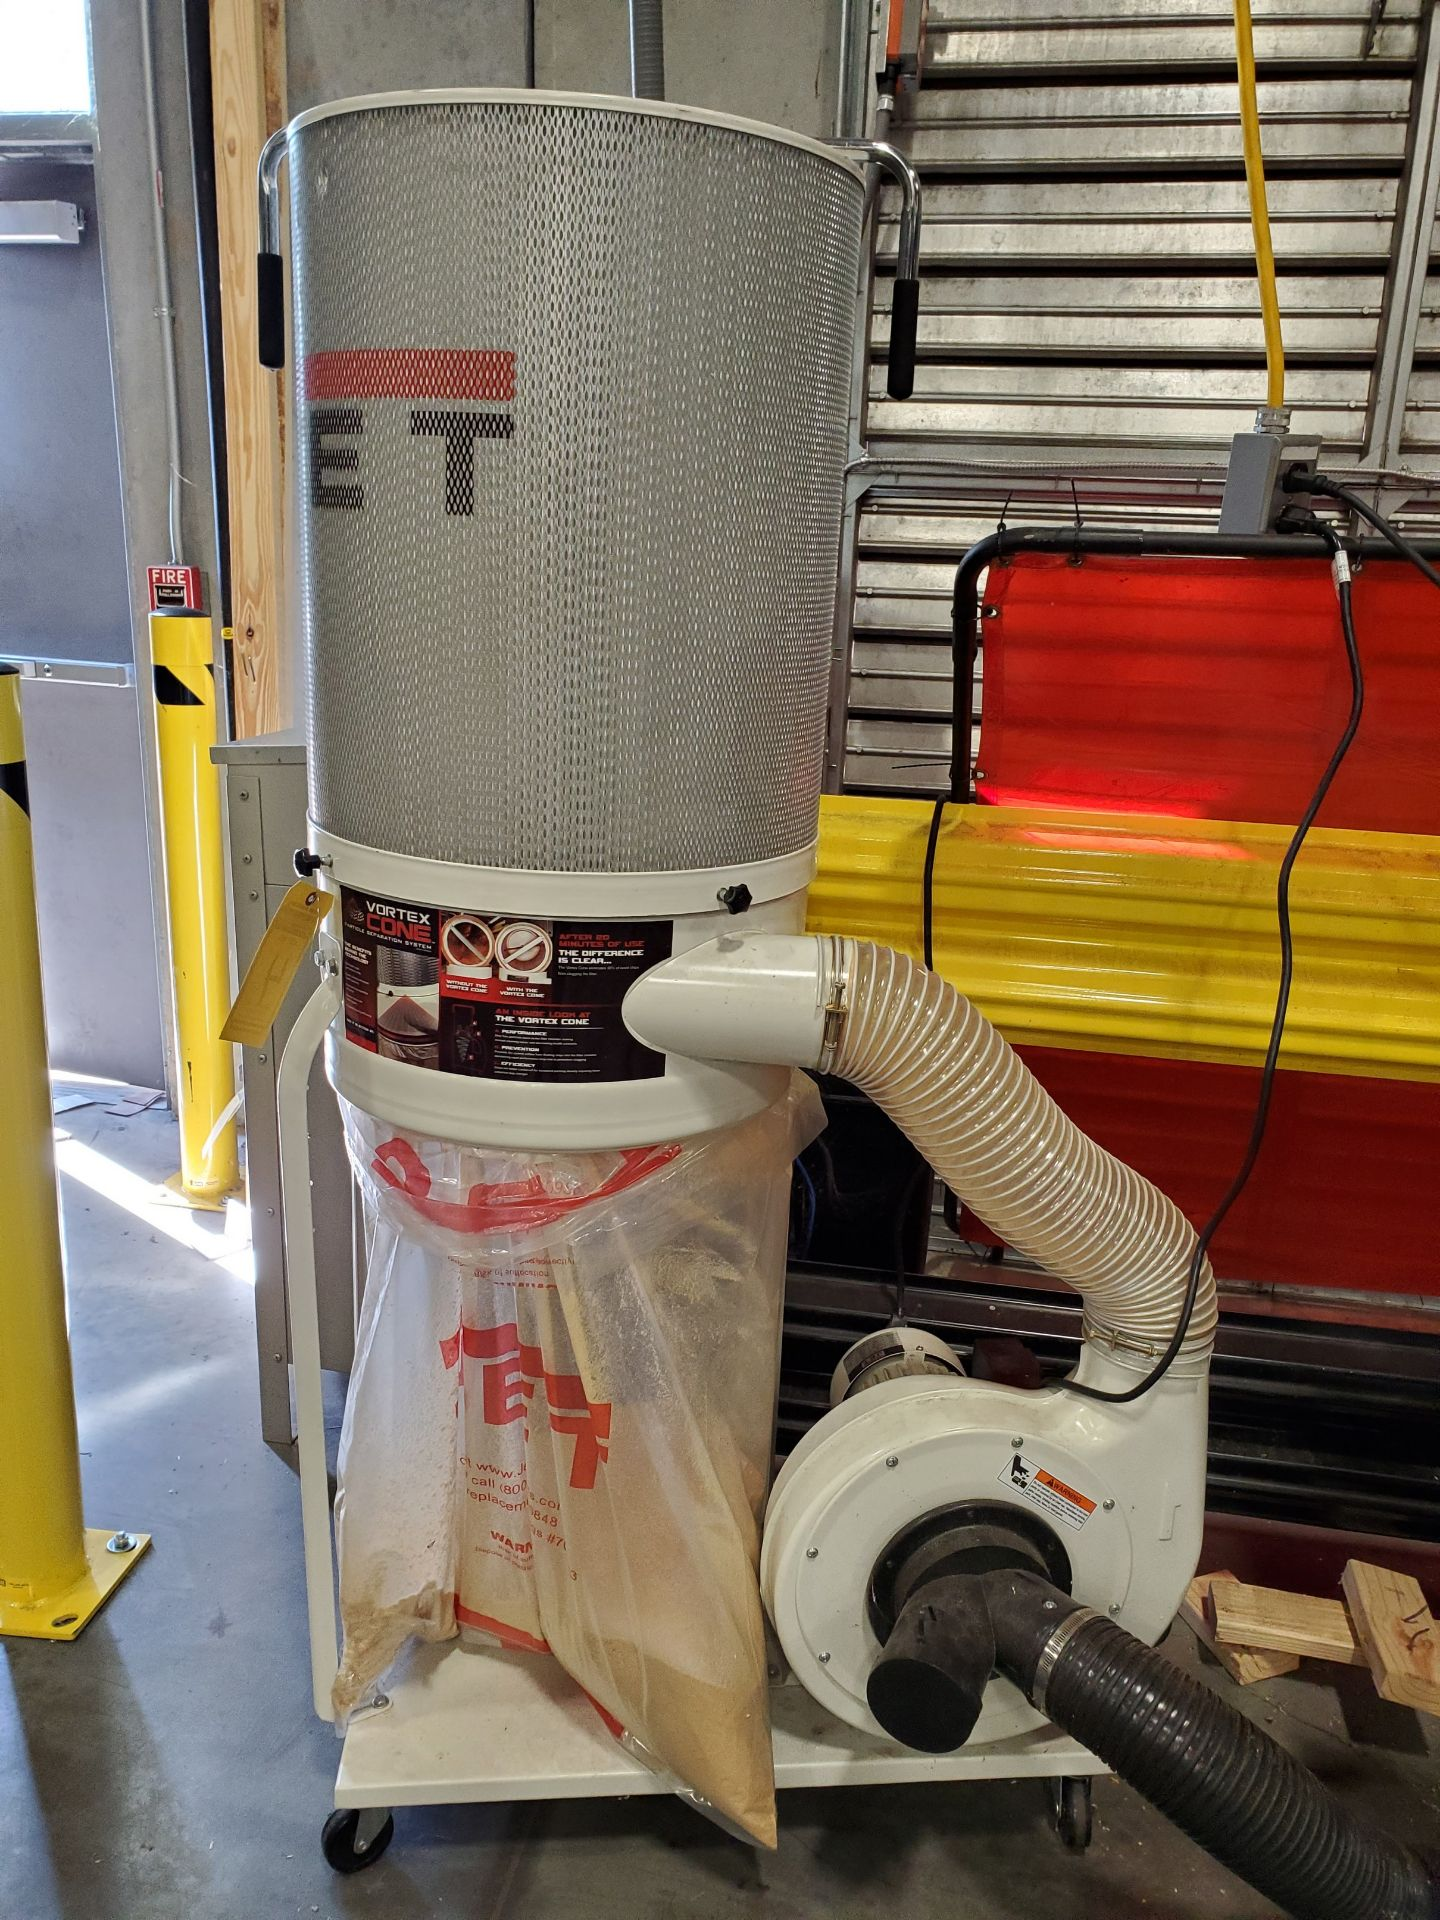 Lot 504 - JET VORTEX CONE PORTABLE DUST COLLECTOR, MODEL DC-1100VX, 1.5 HP, 115/230V, BOTTOM REPLACEABLE BAG,